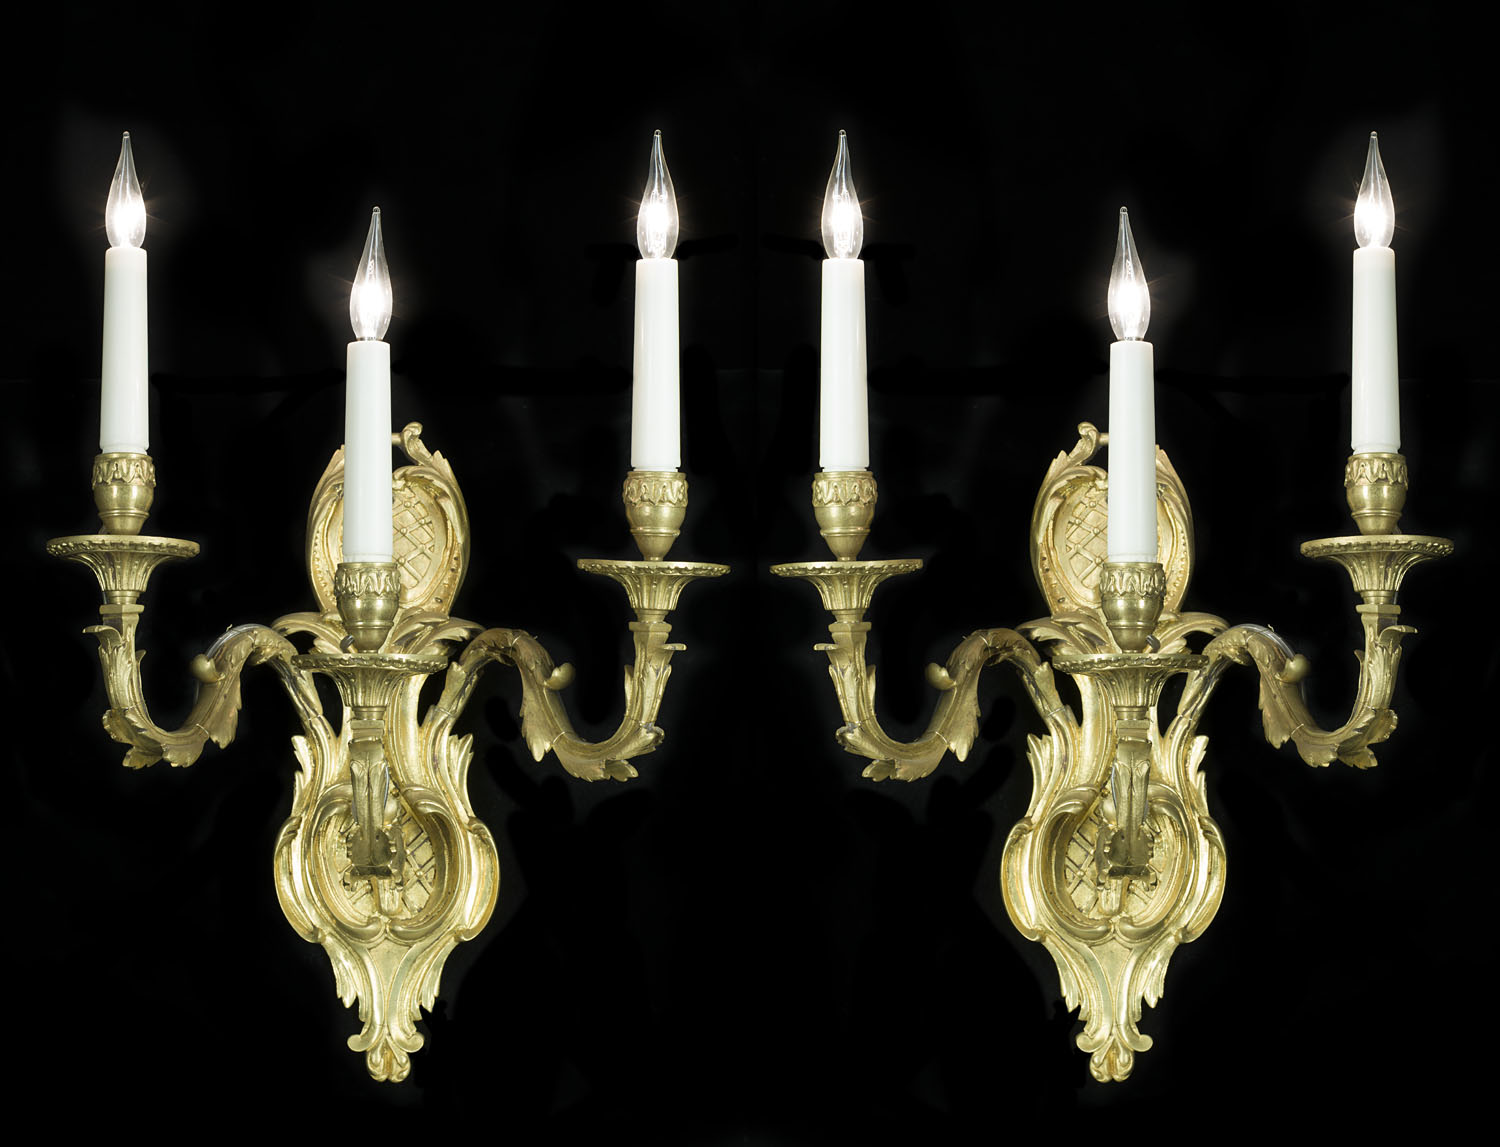 French 29th century three branch Baroque style wall lights